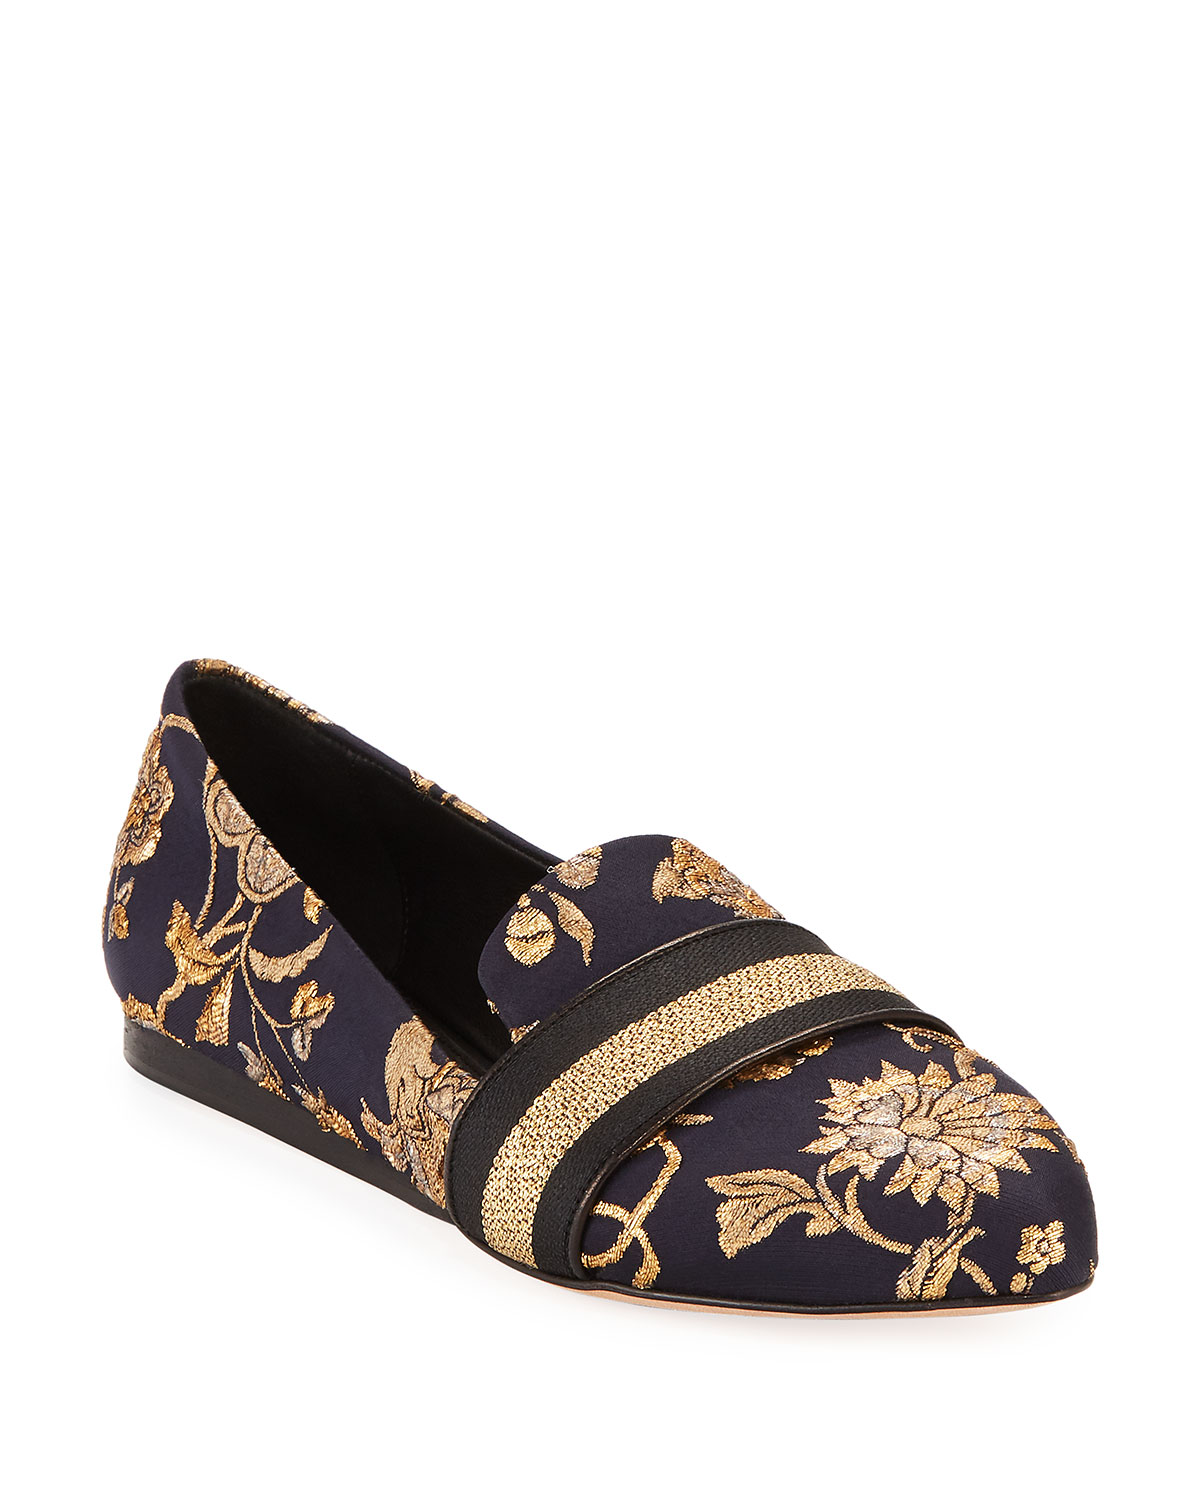 Griffin Flat Metallic Brocade Loafers in Black/Gold